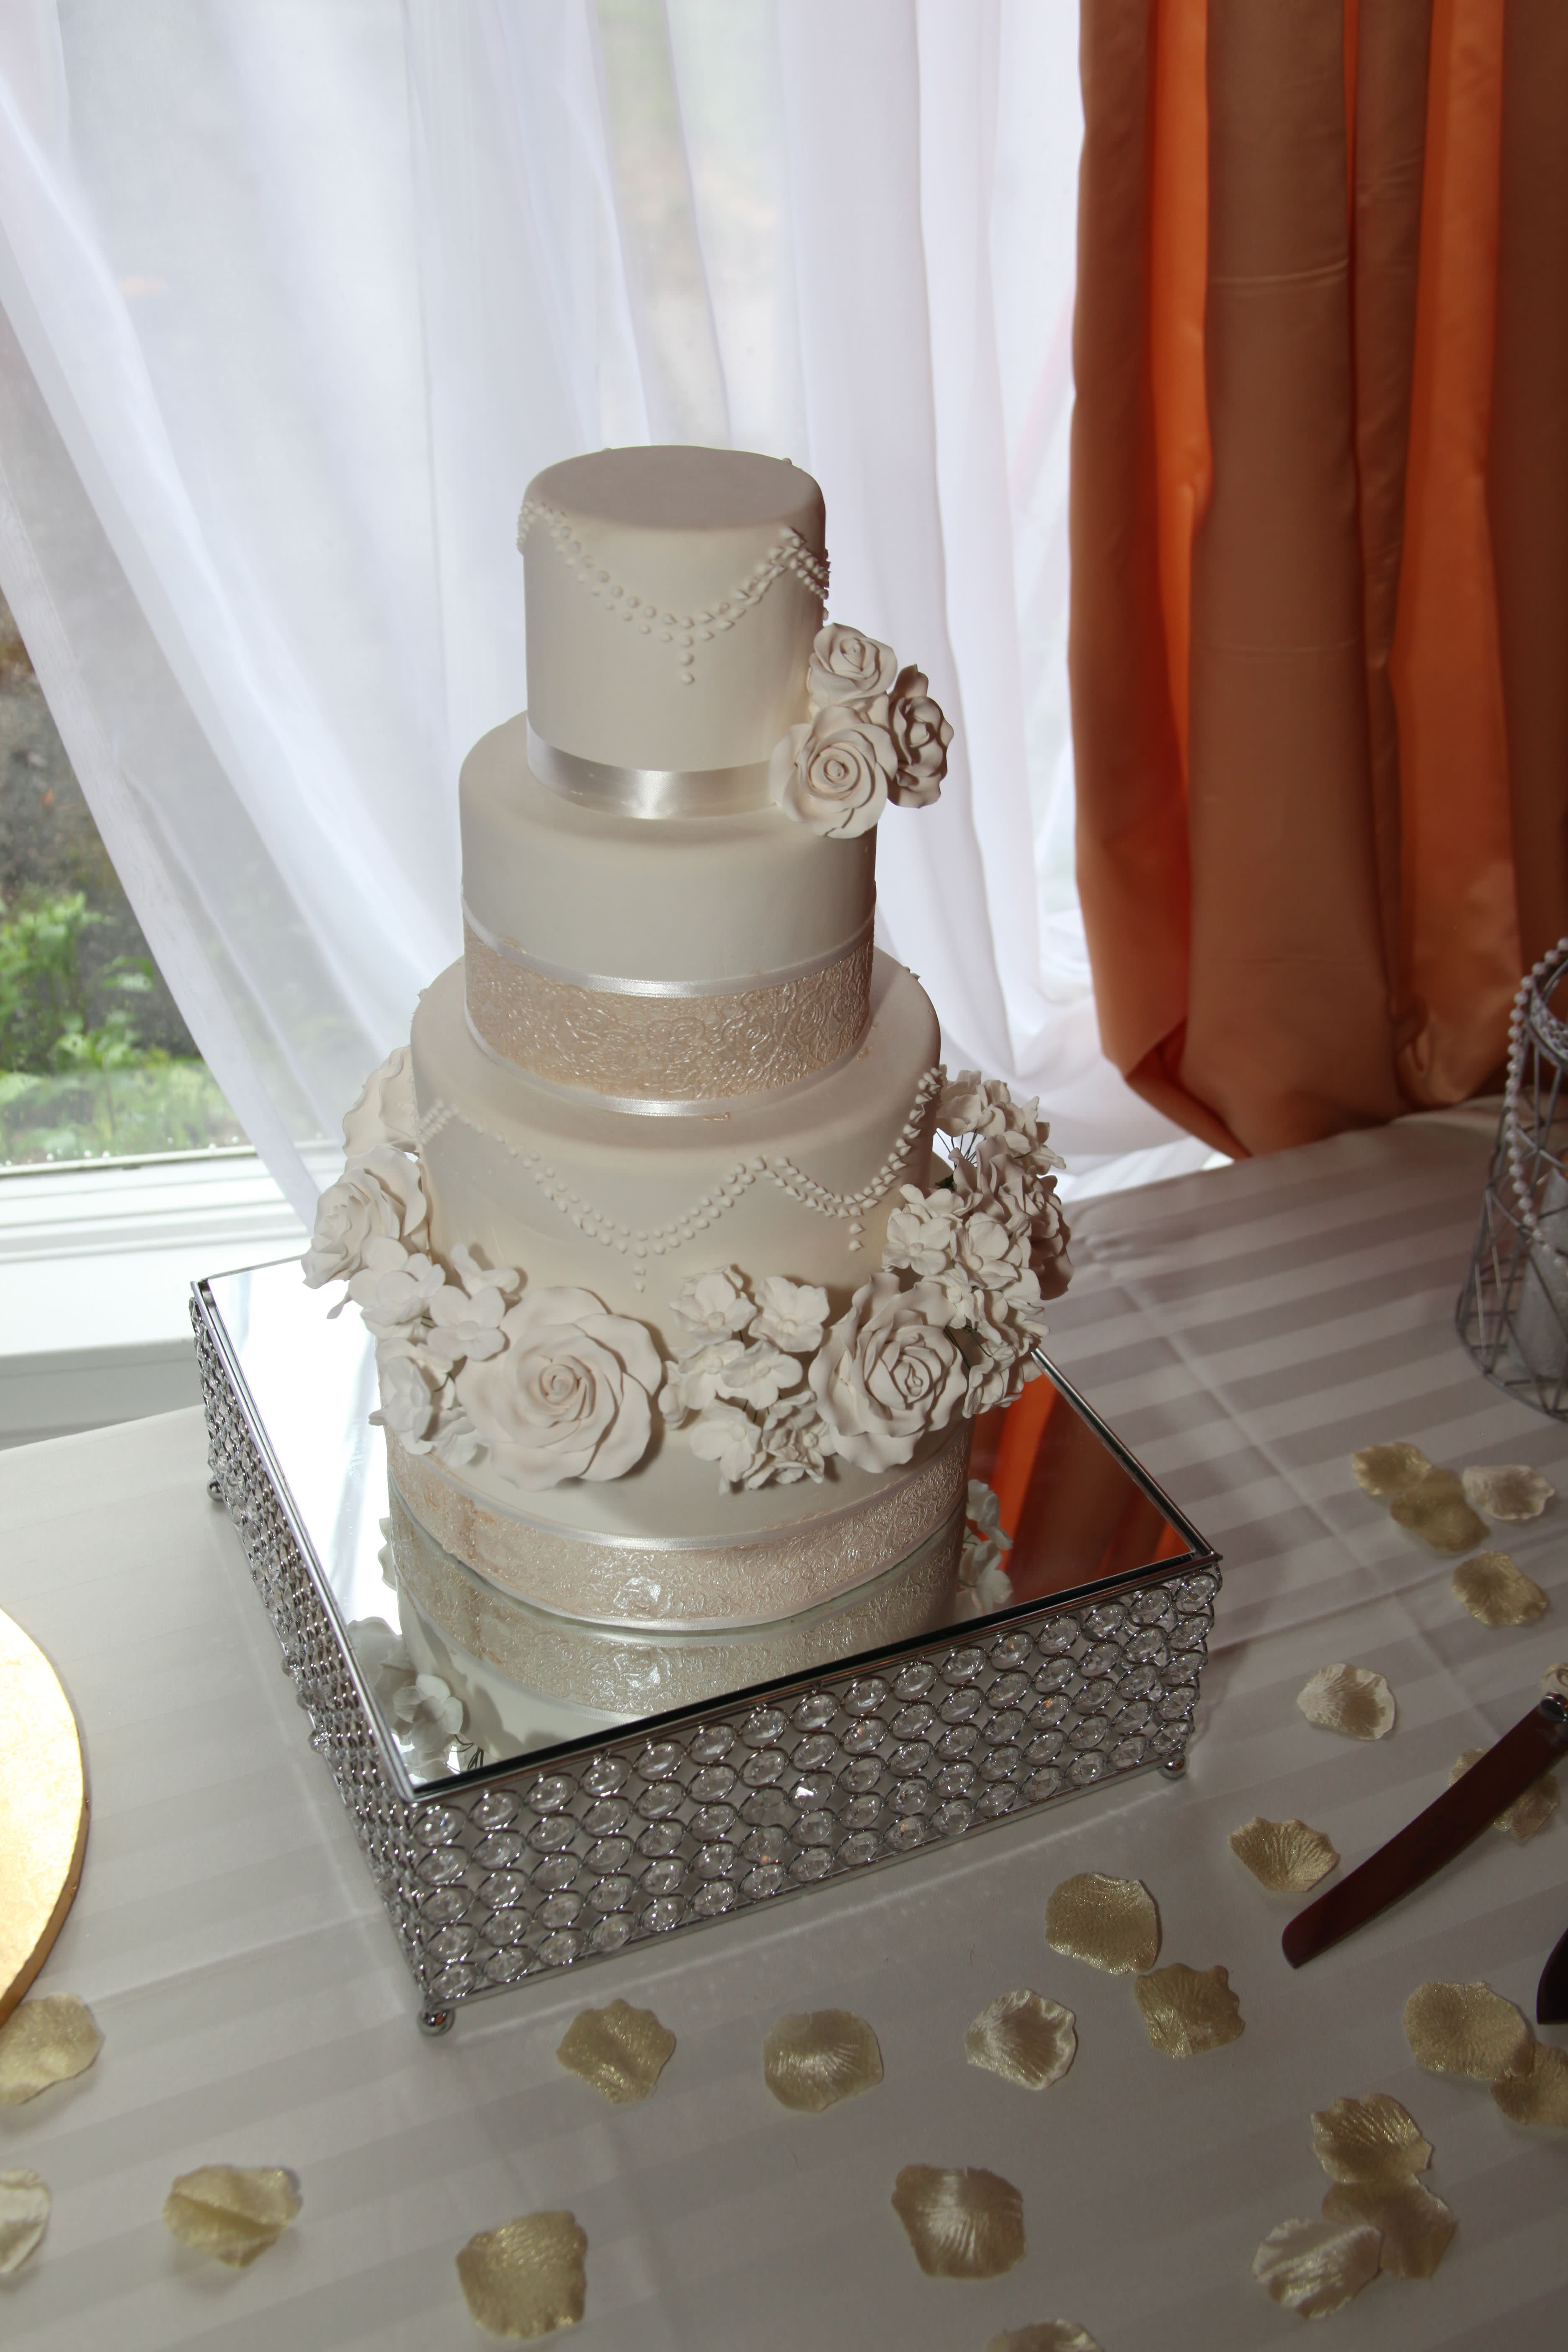 Nostalgia 1720 Weddings And Special Events